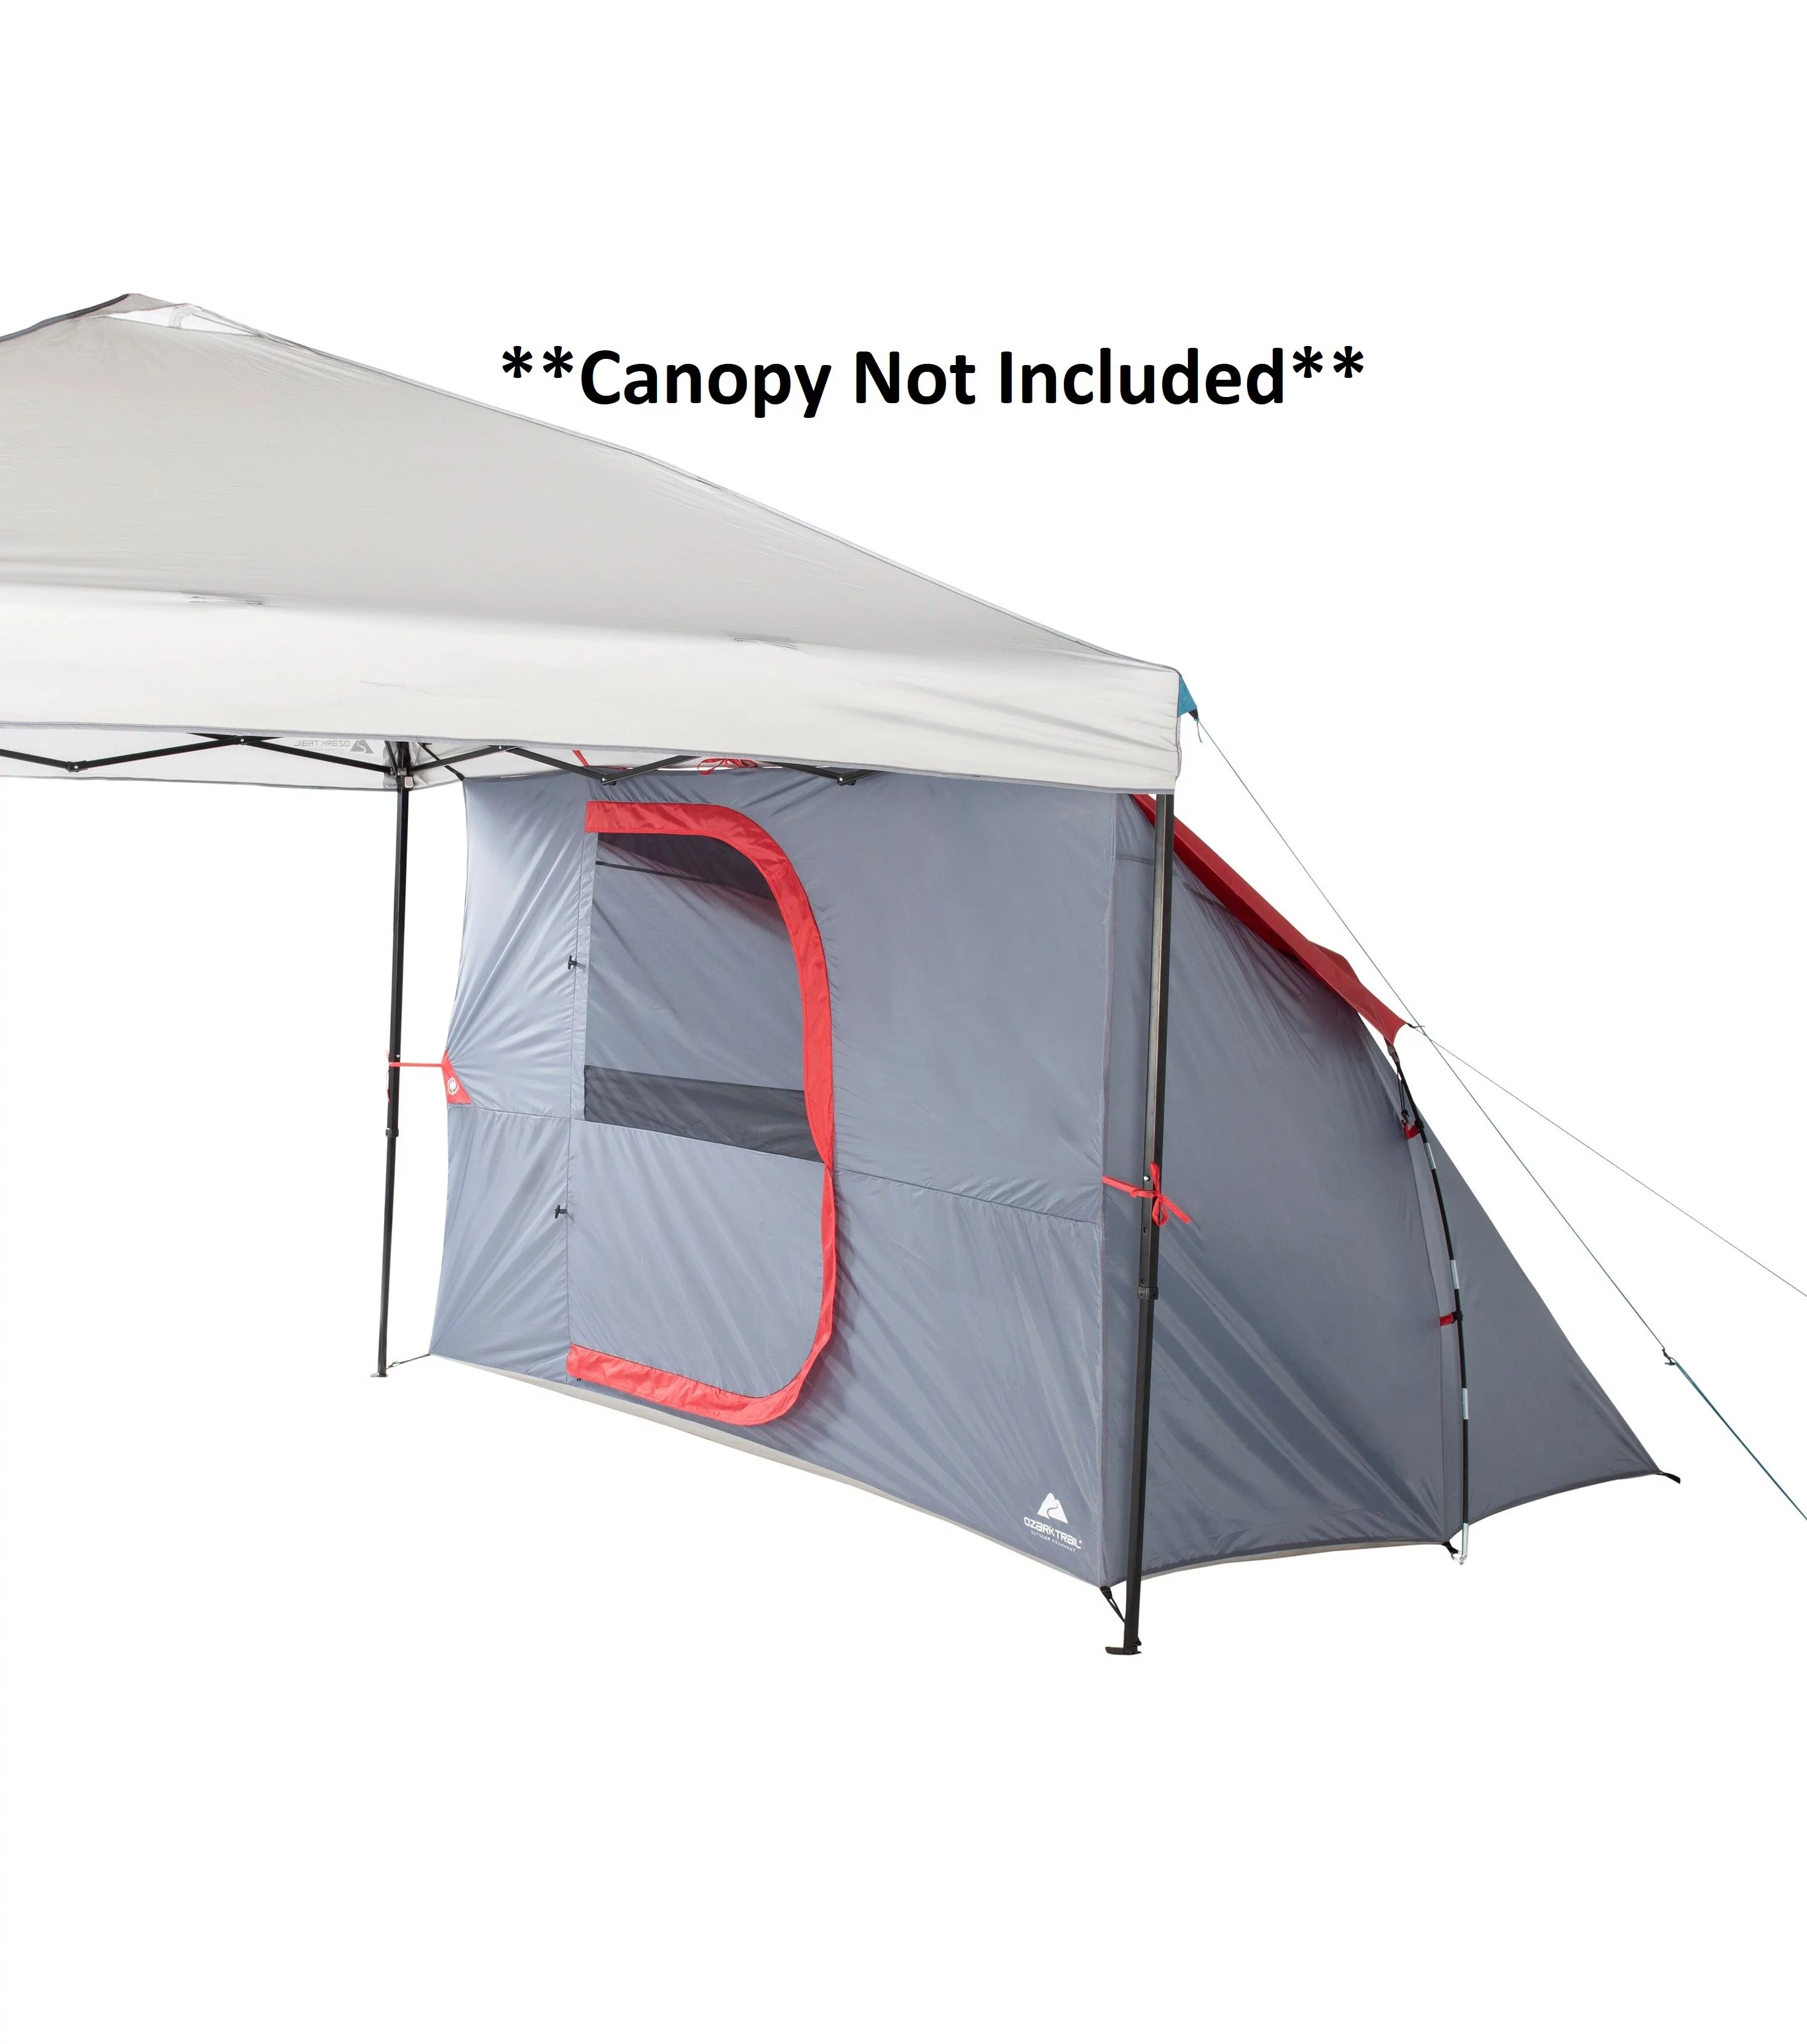 ozark trail connectent 4 person canopy tent straight leg canopy sold separately